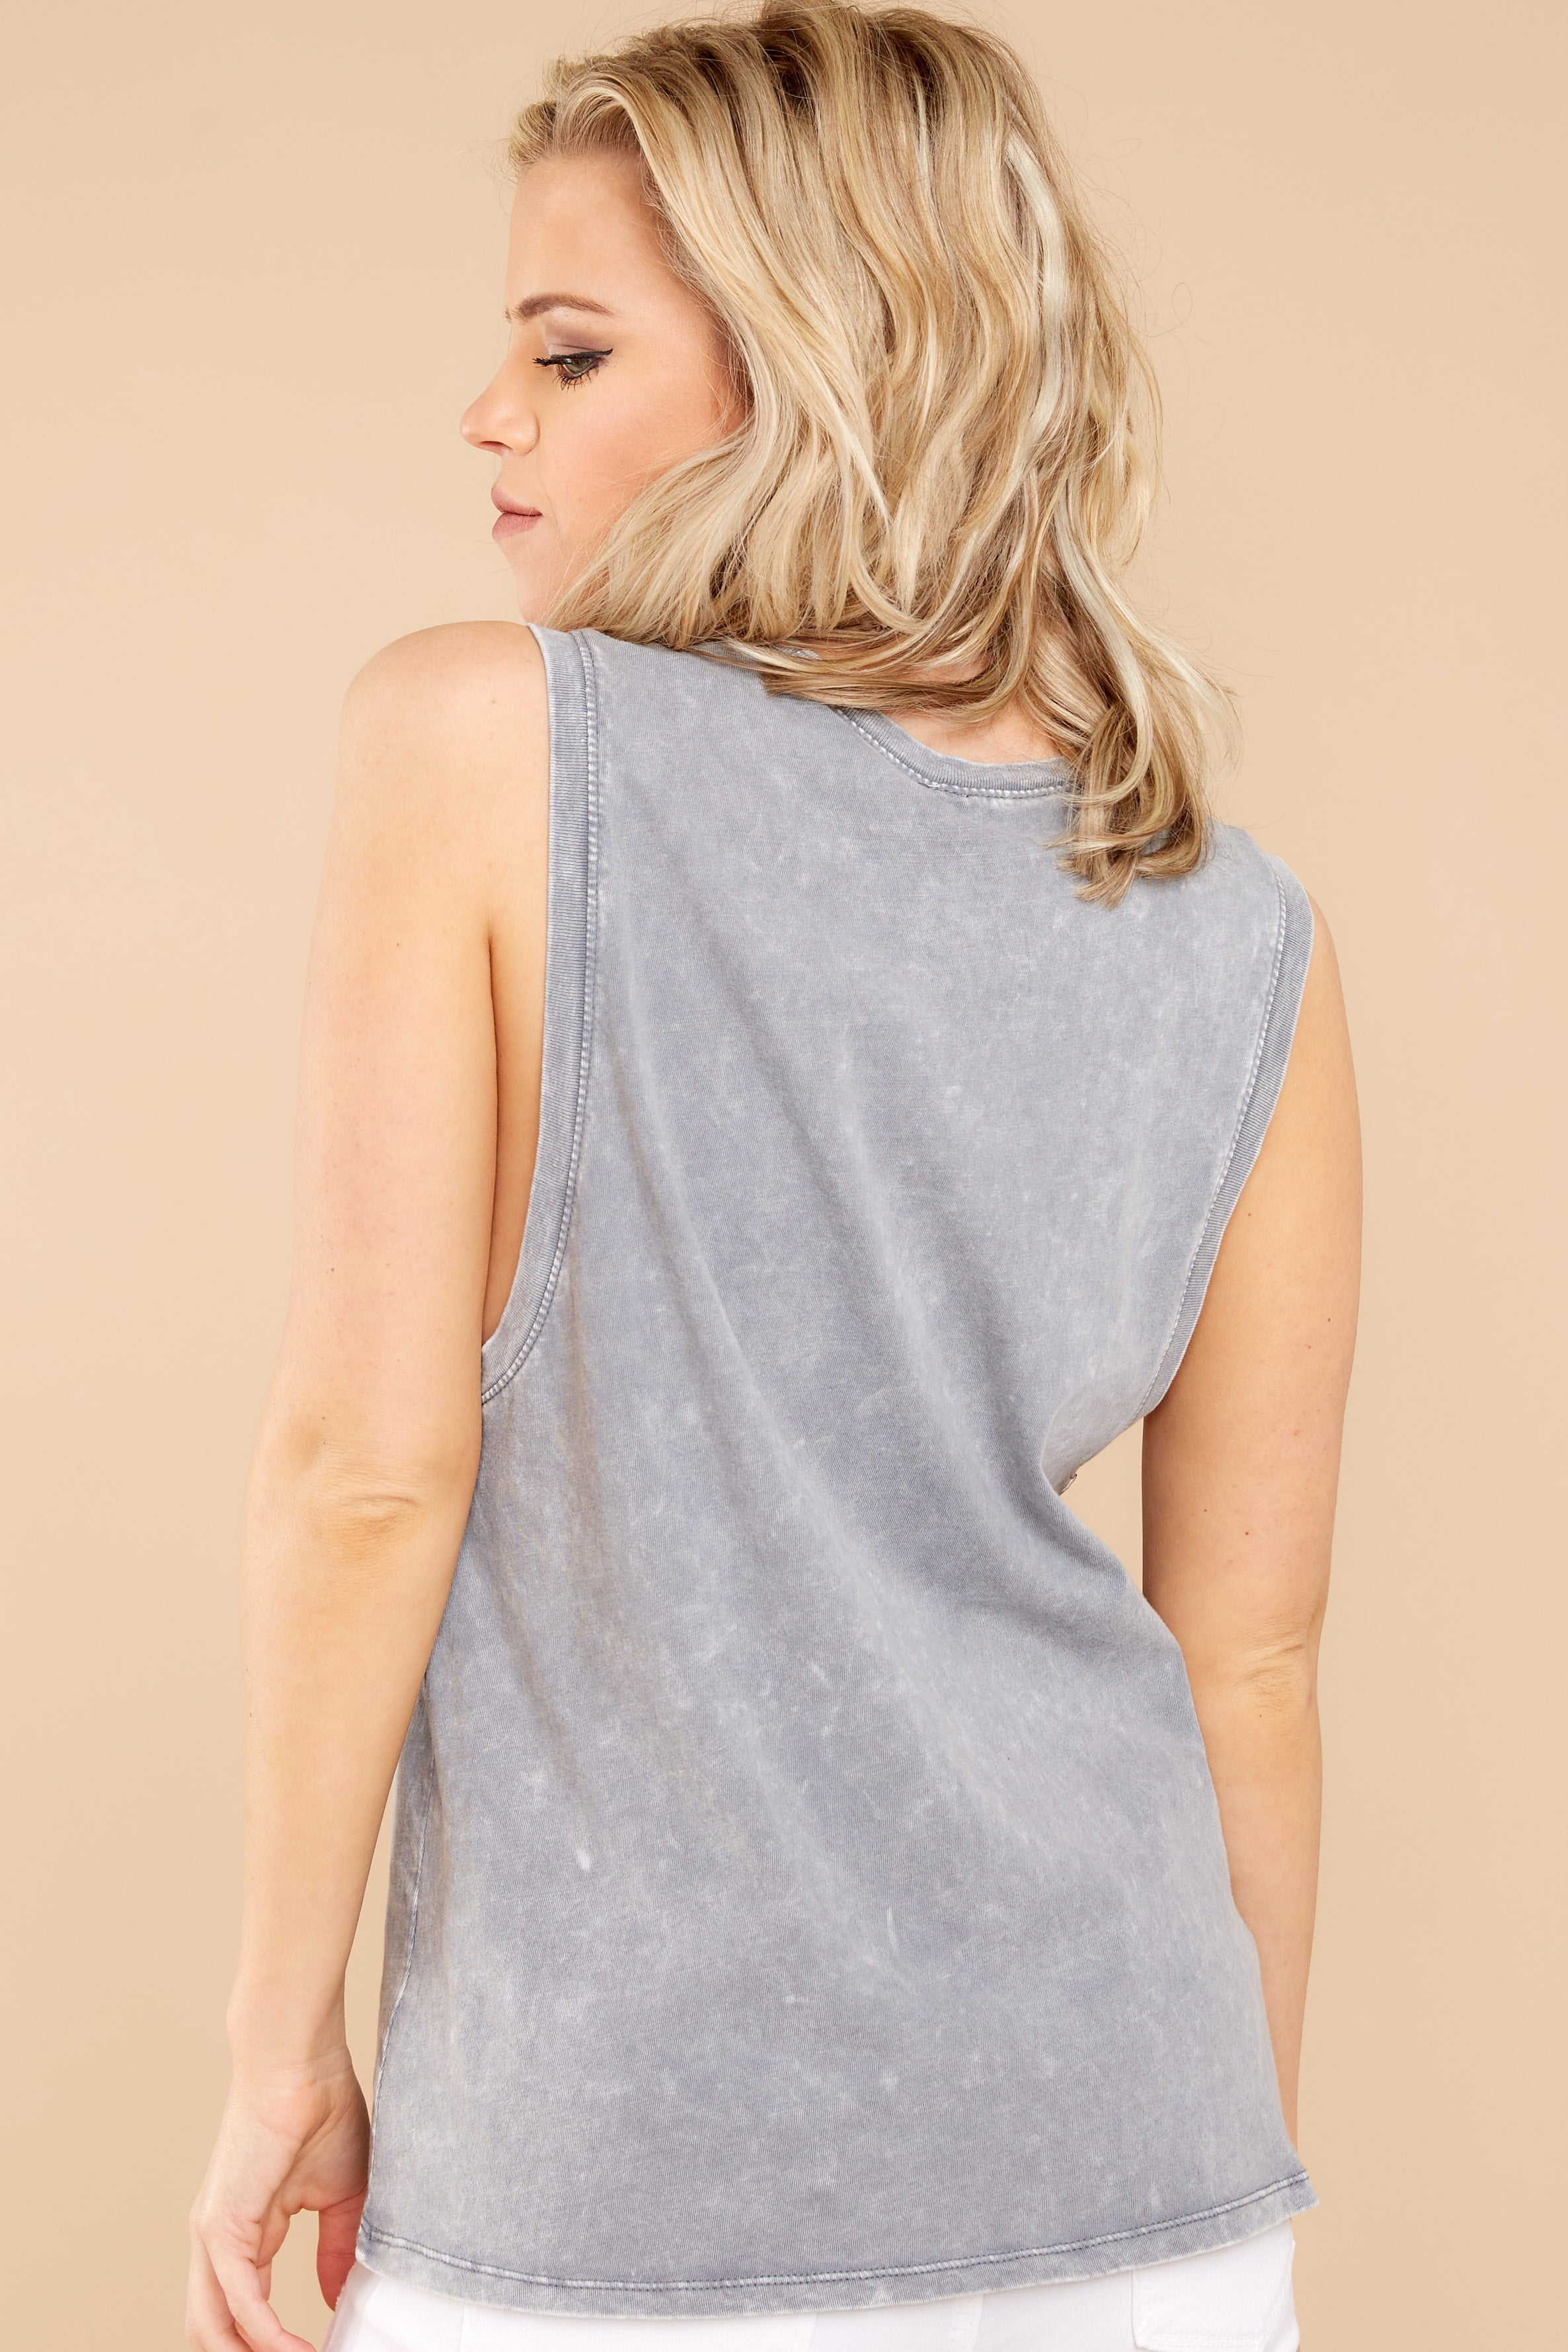 5 Z Supply Washed Muscle Tank In Grey at reddressboutique.com5